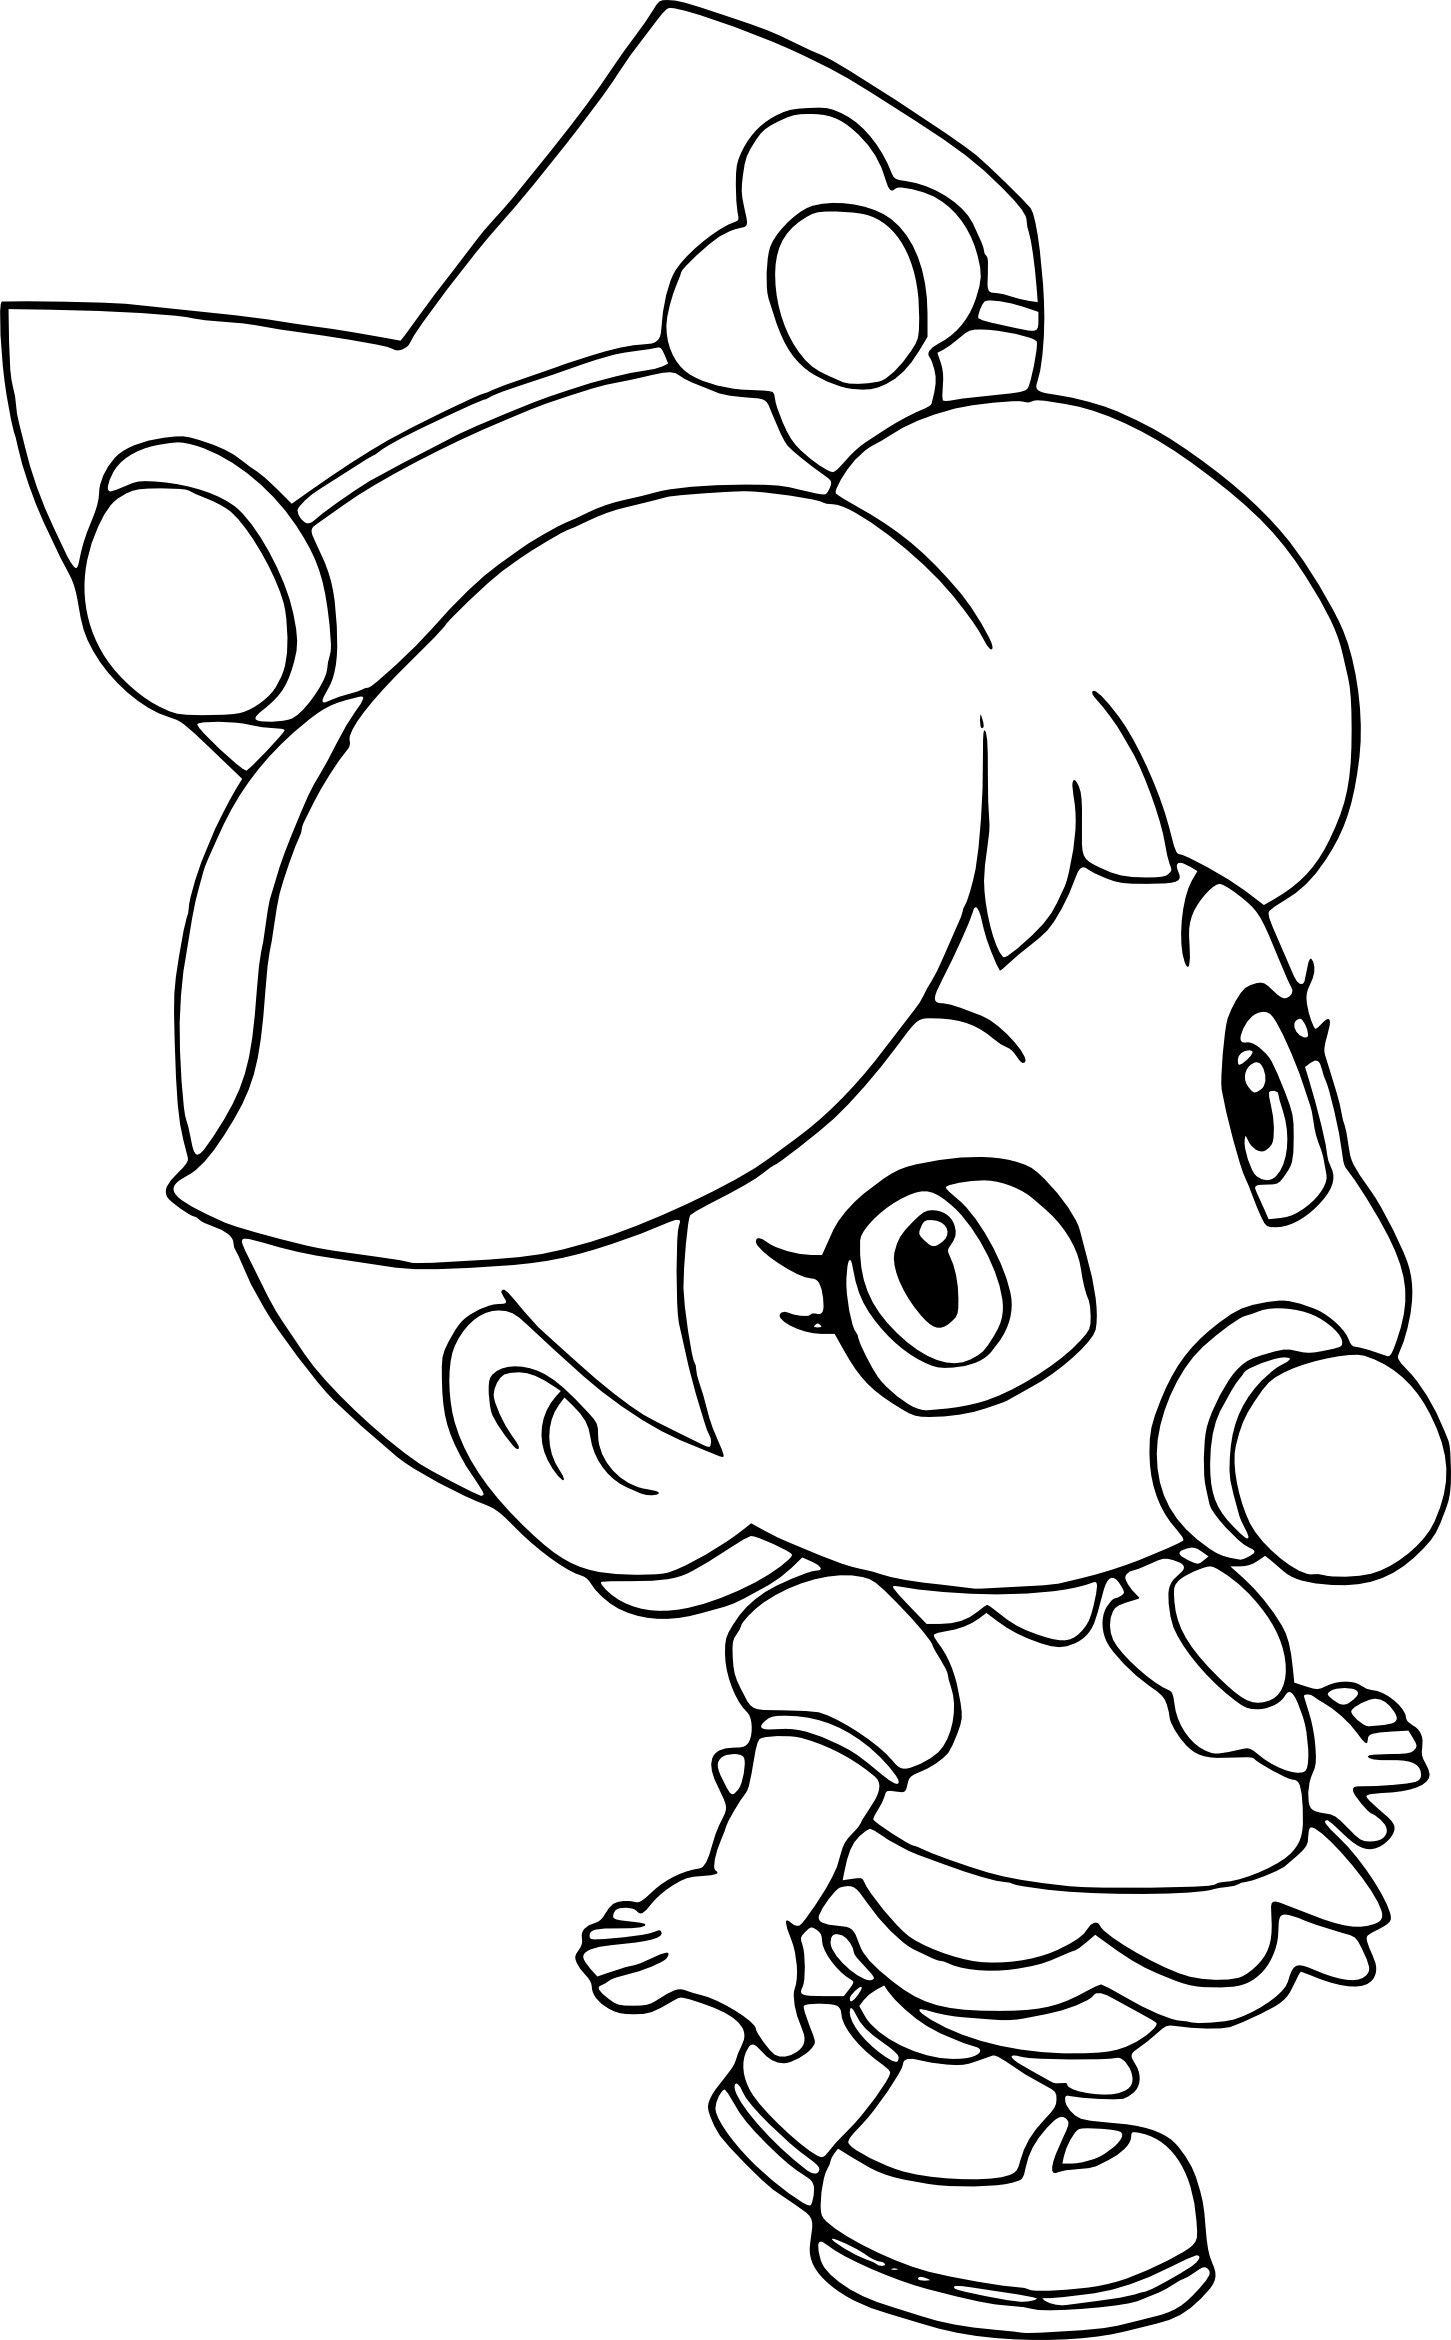 Coloring Mario Bros Princess Peach Princess Coloring Pages Mario Coloring Pages Disney Princess Coloring Pages